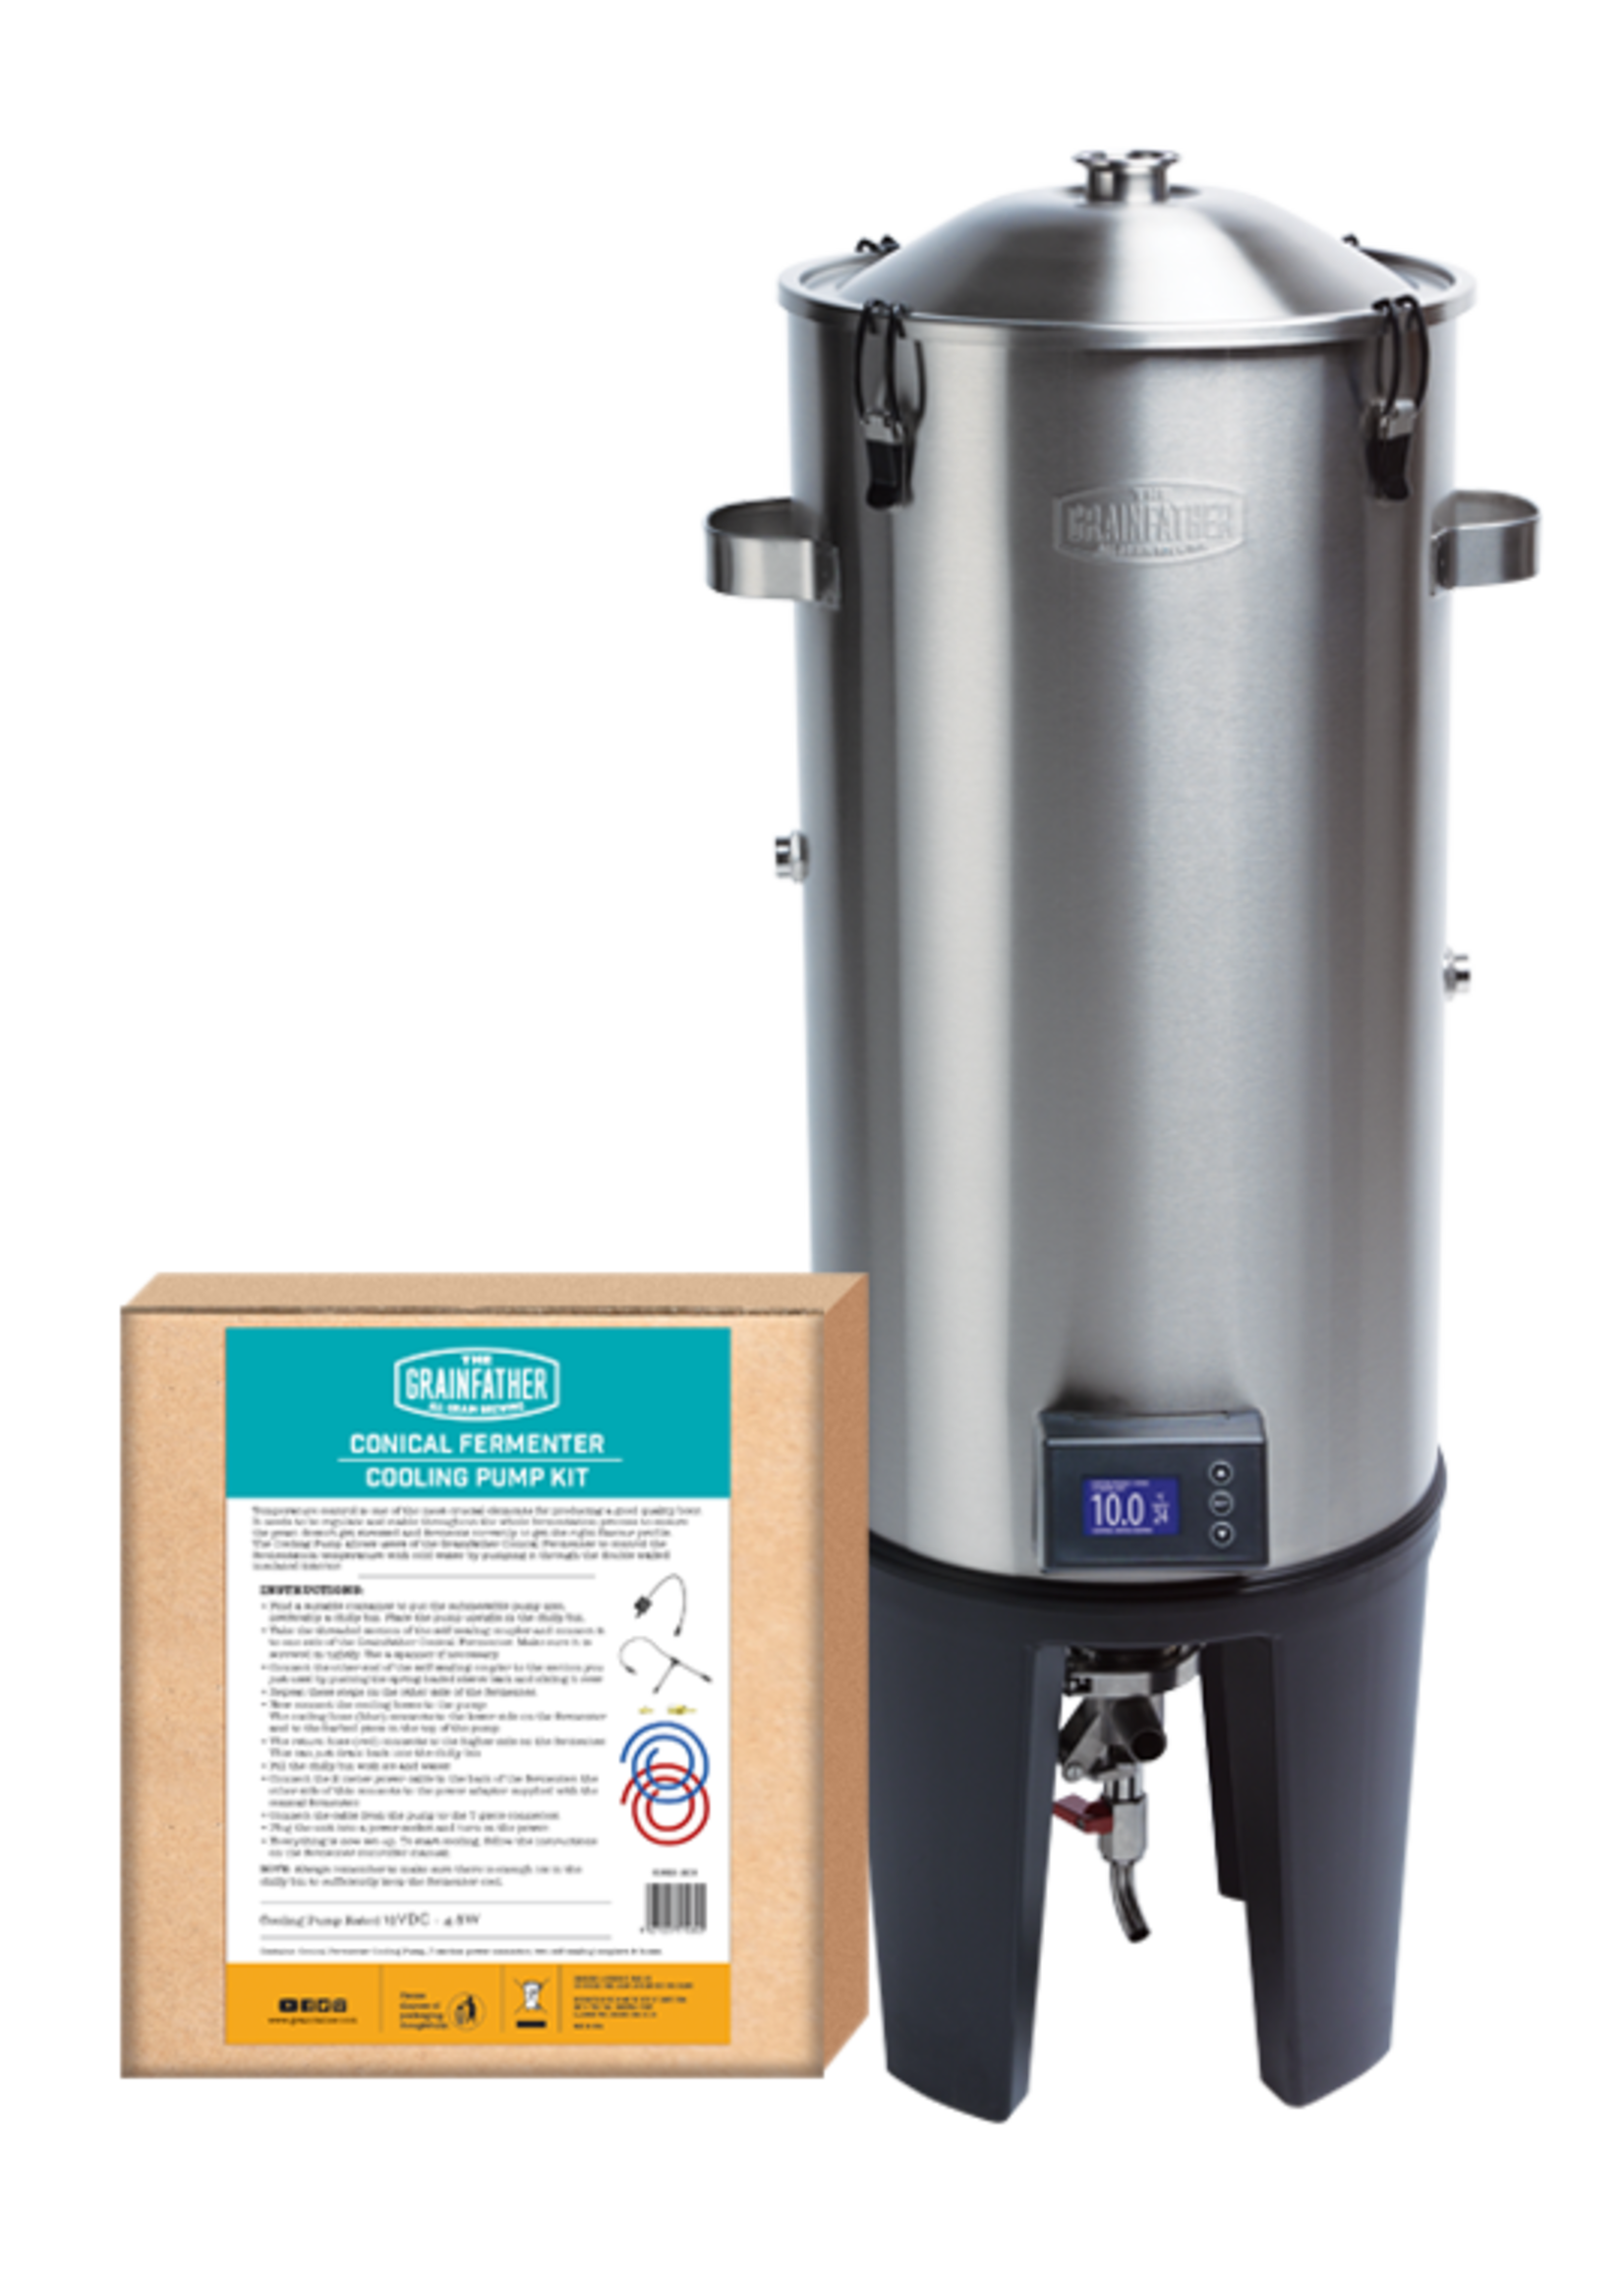 Fermentation The Grainfather - Conical Fermenter Basic Cooling Edition